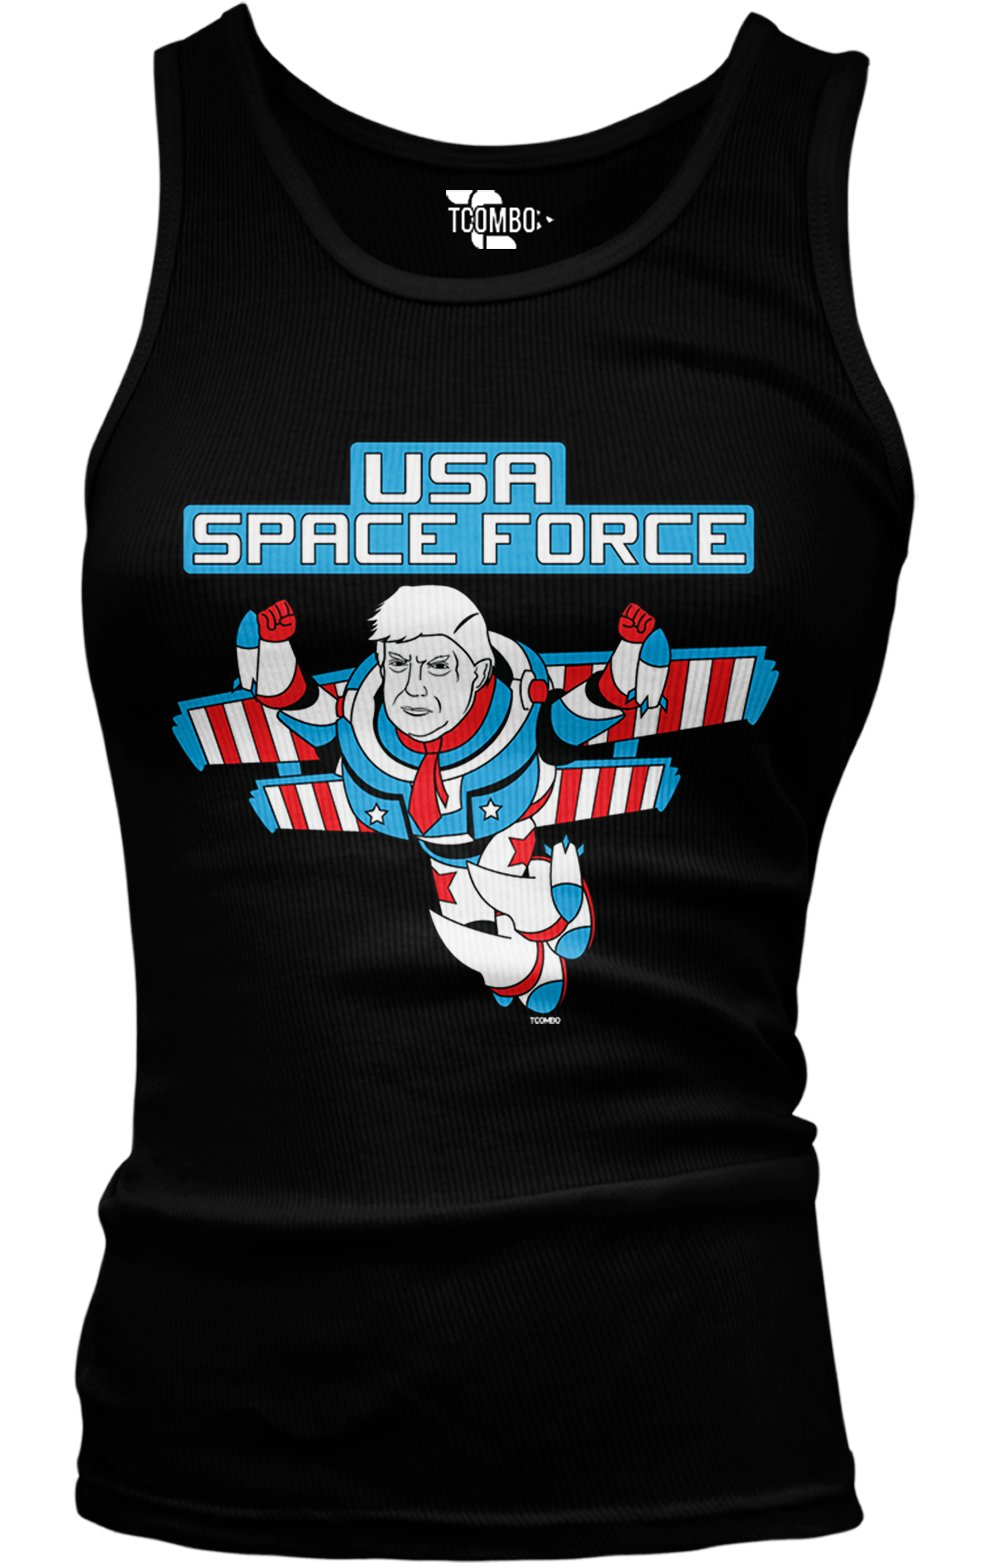 Trump Space Force Commander Tank Top 6971 Shirts